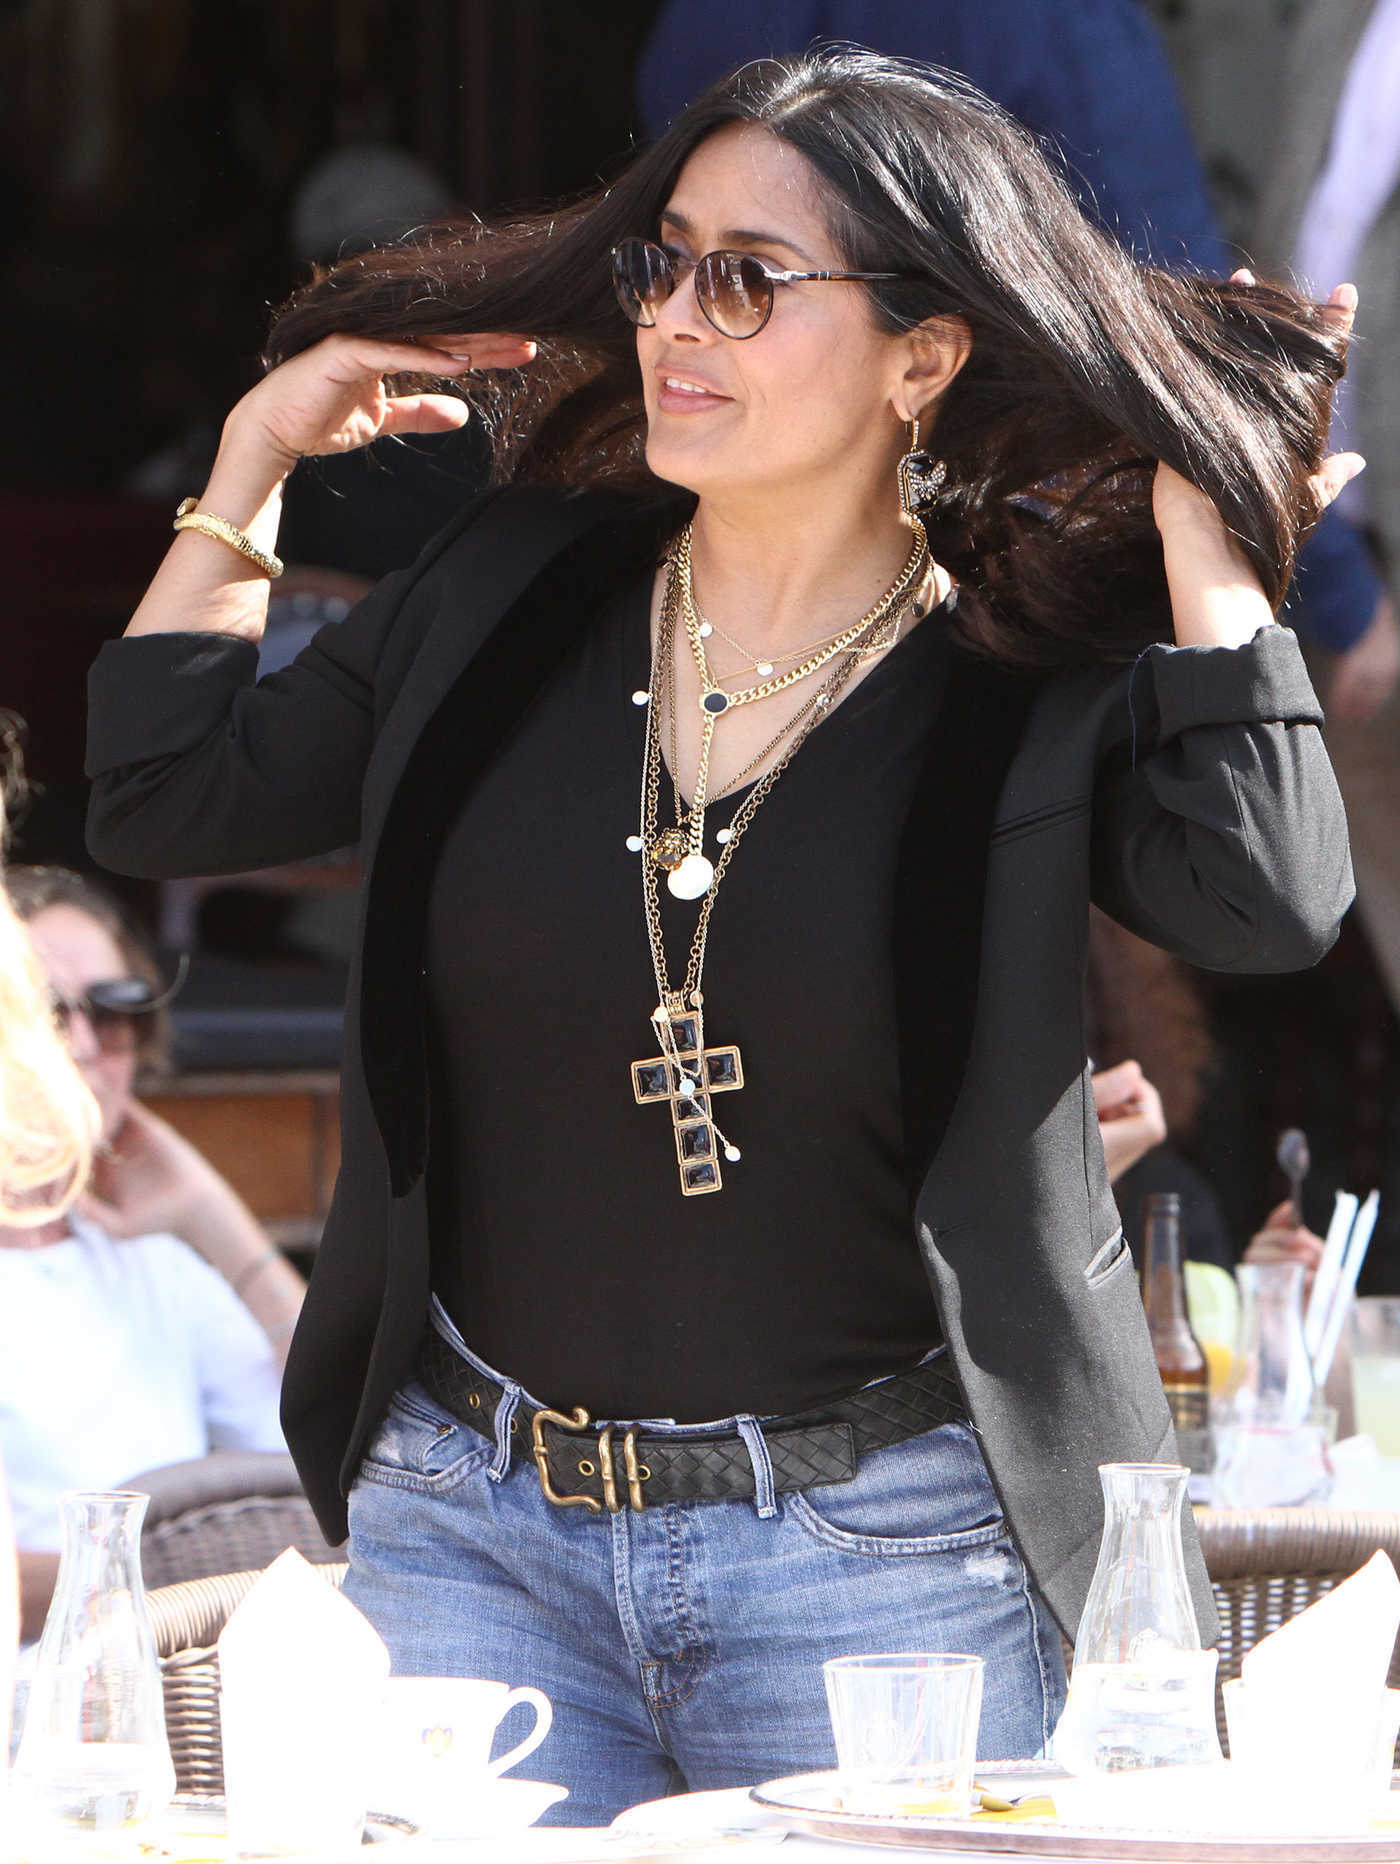 Salma Hayek in a Blue Ripped Jeans Was Seen Out in Venice 09/02/2018